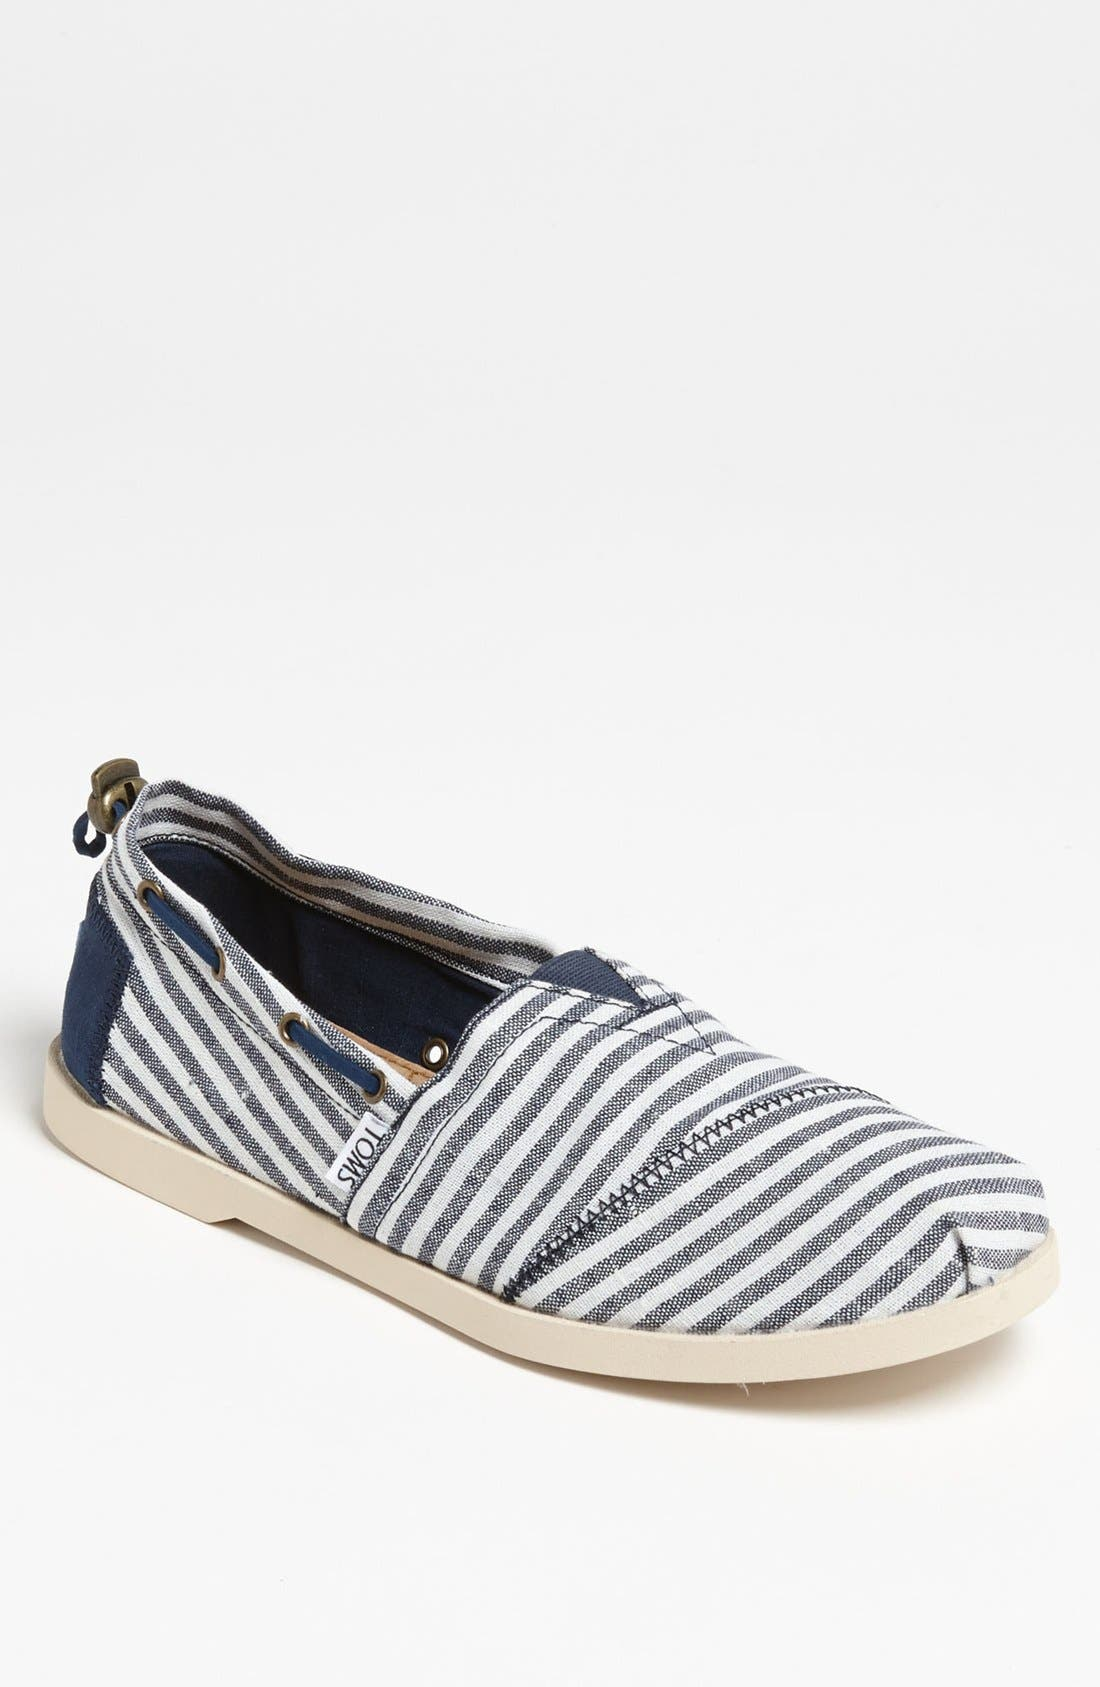 Main Image - TOMS 'Bimini - Nautical' Boat Shoe (Men)